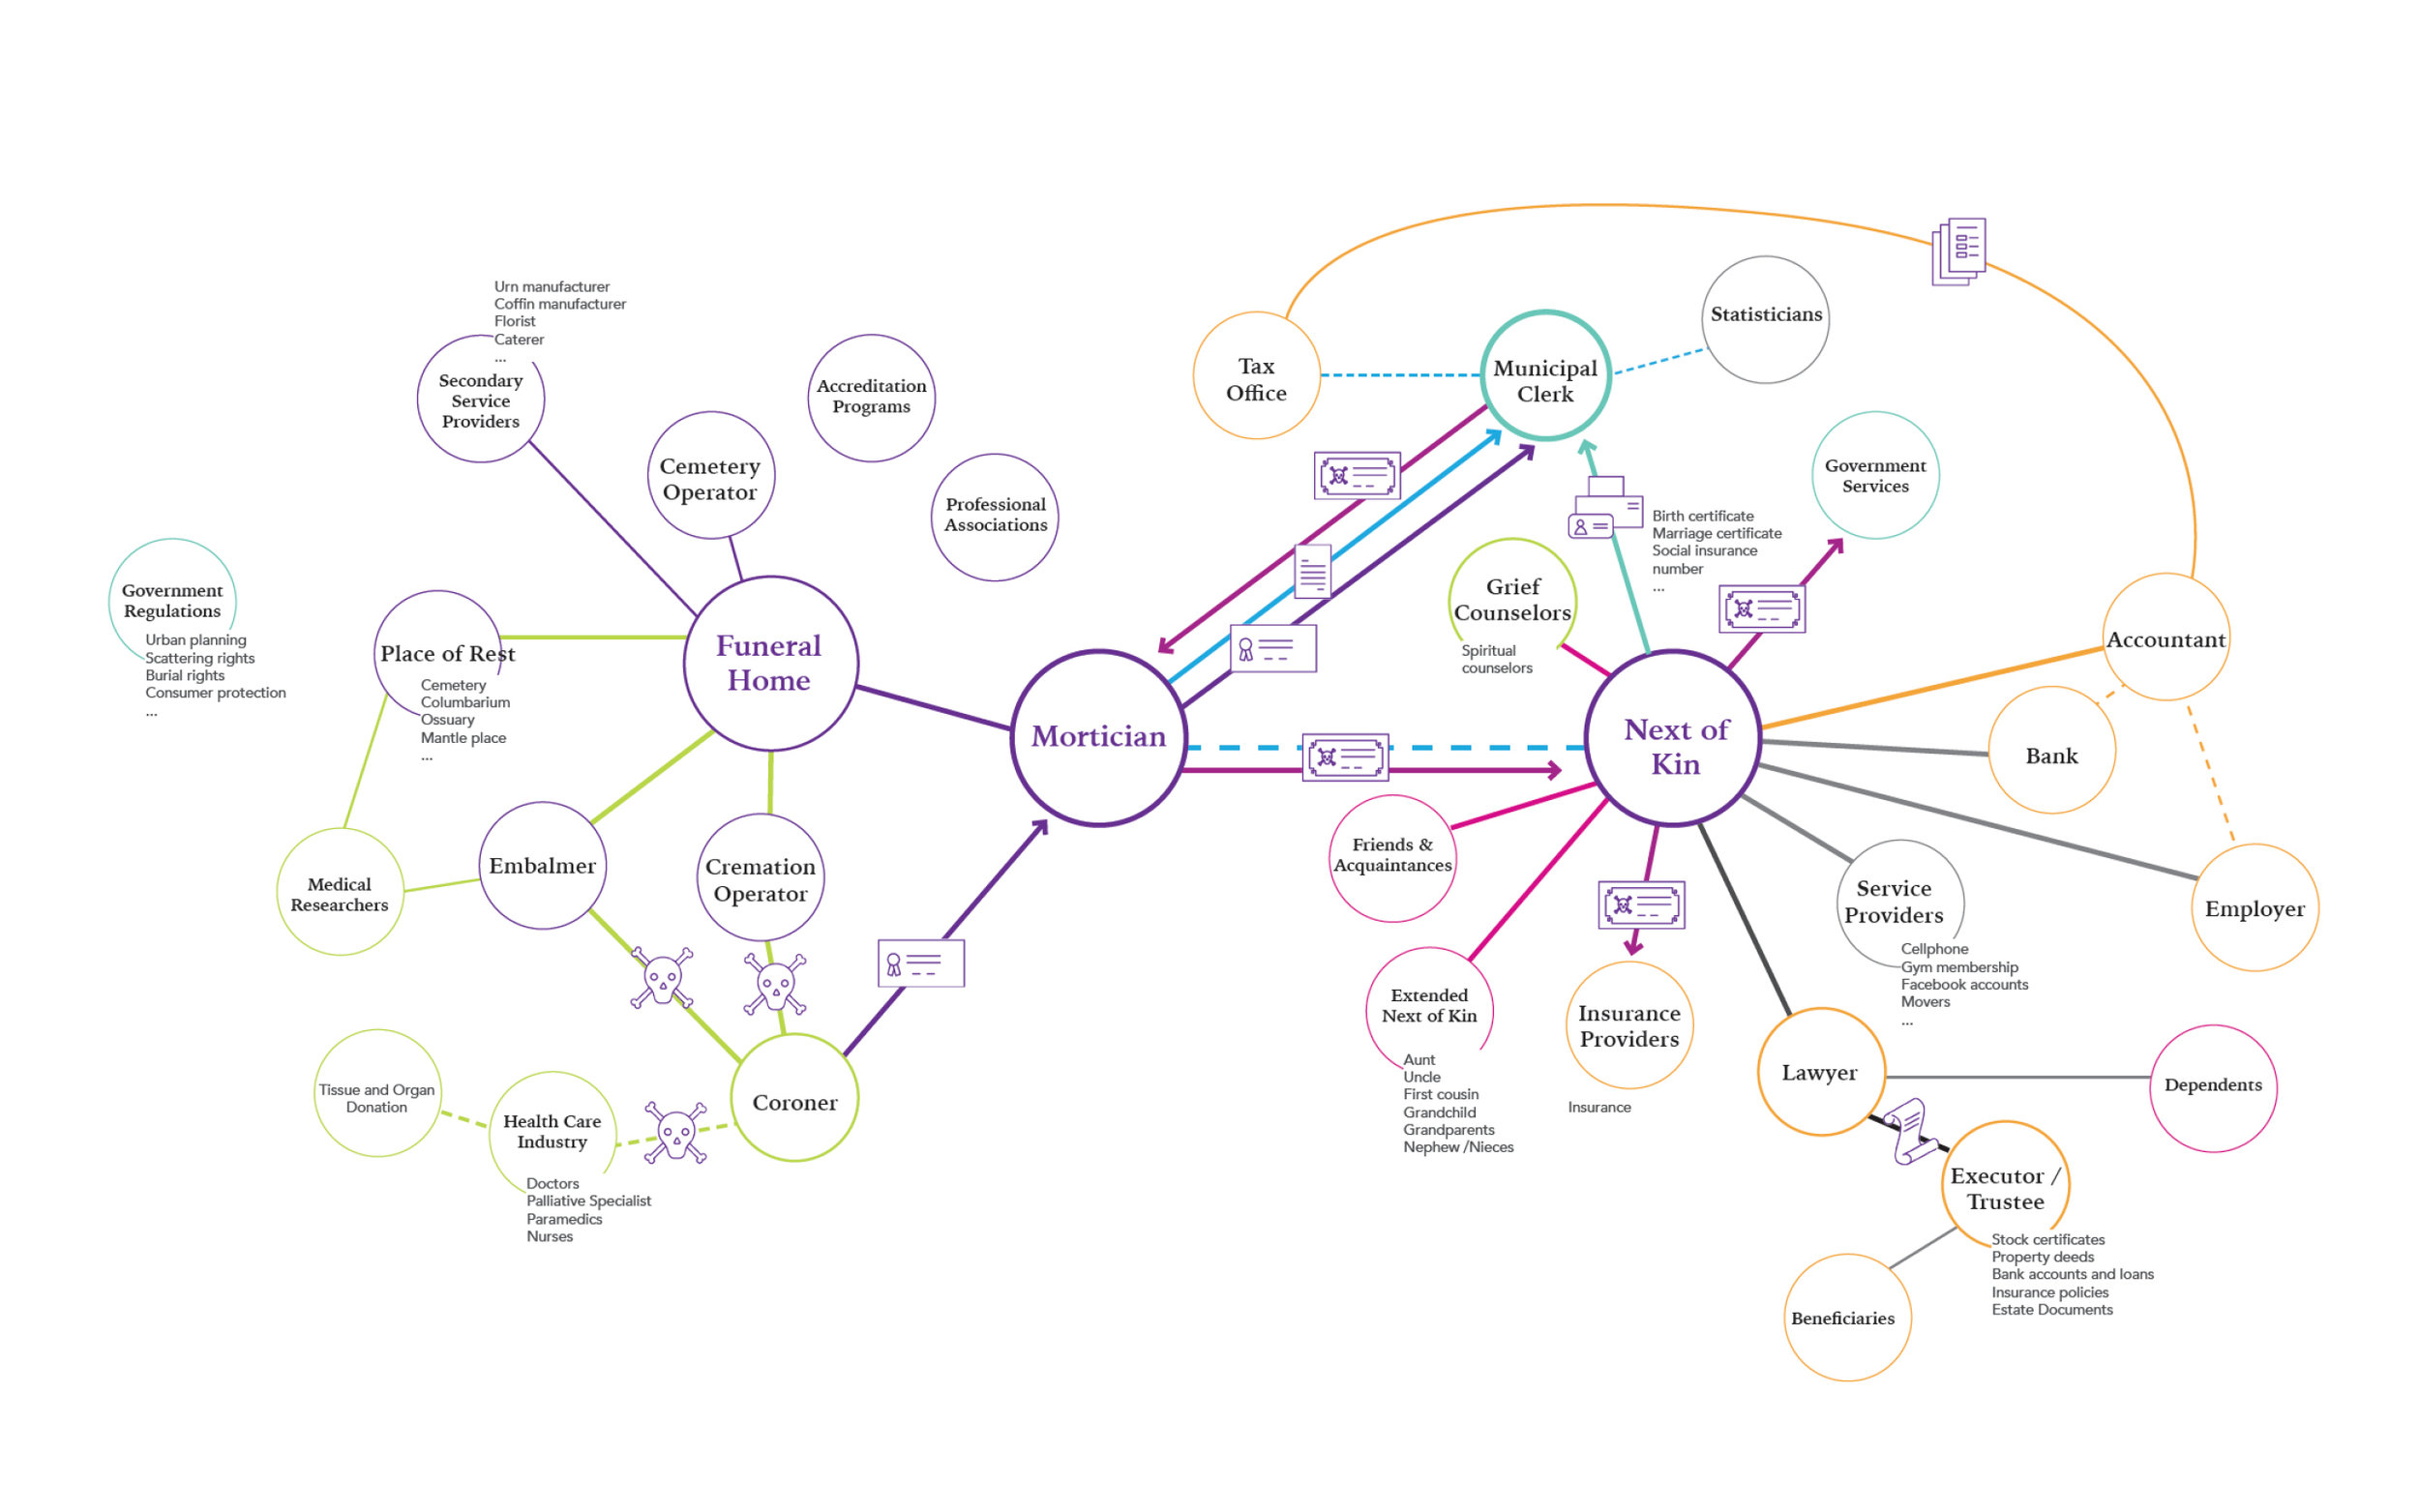 Excerpt from the gigamap showing the stakeholders and relationships between stakeholders in the death system.